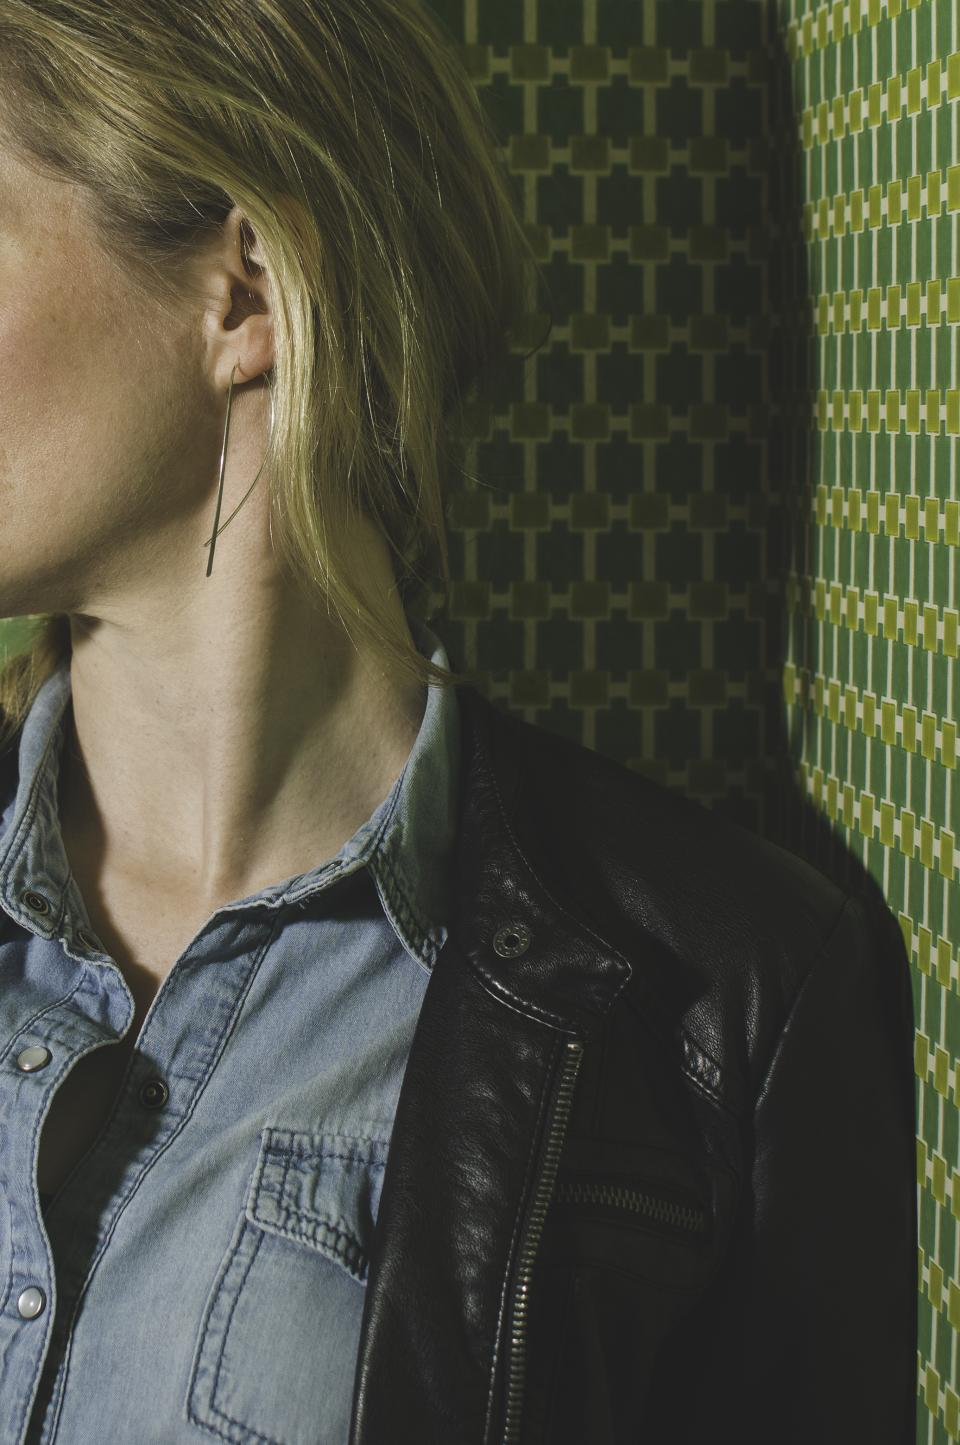 denim, polo, leather, people, woman, neck, blonde, fashion